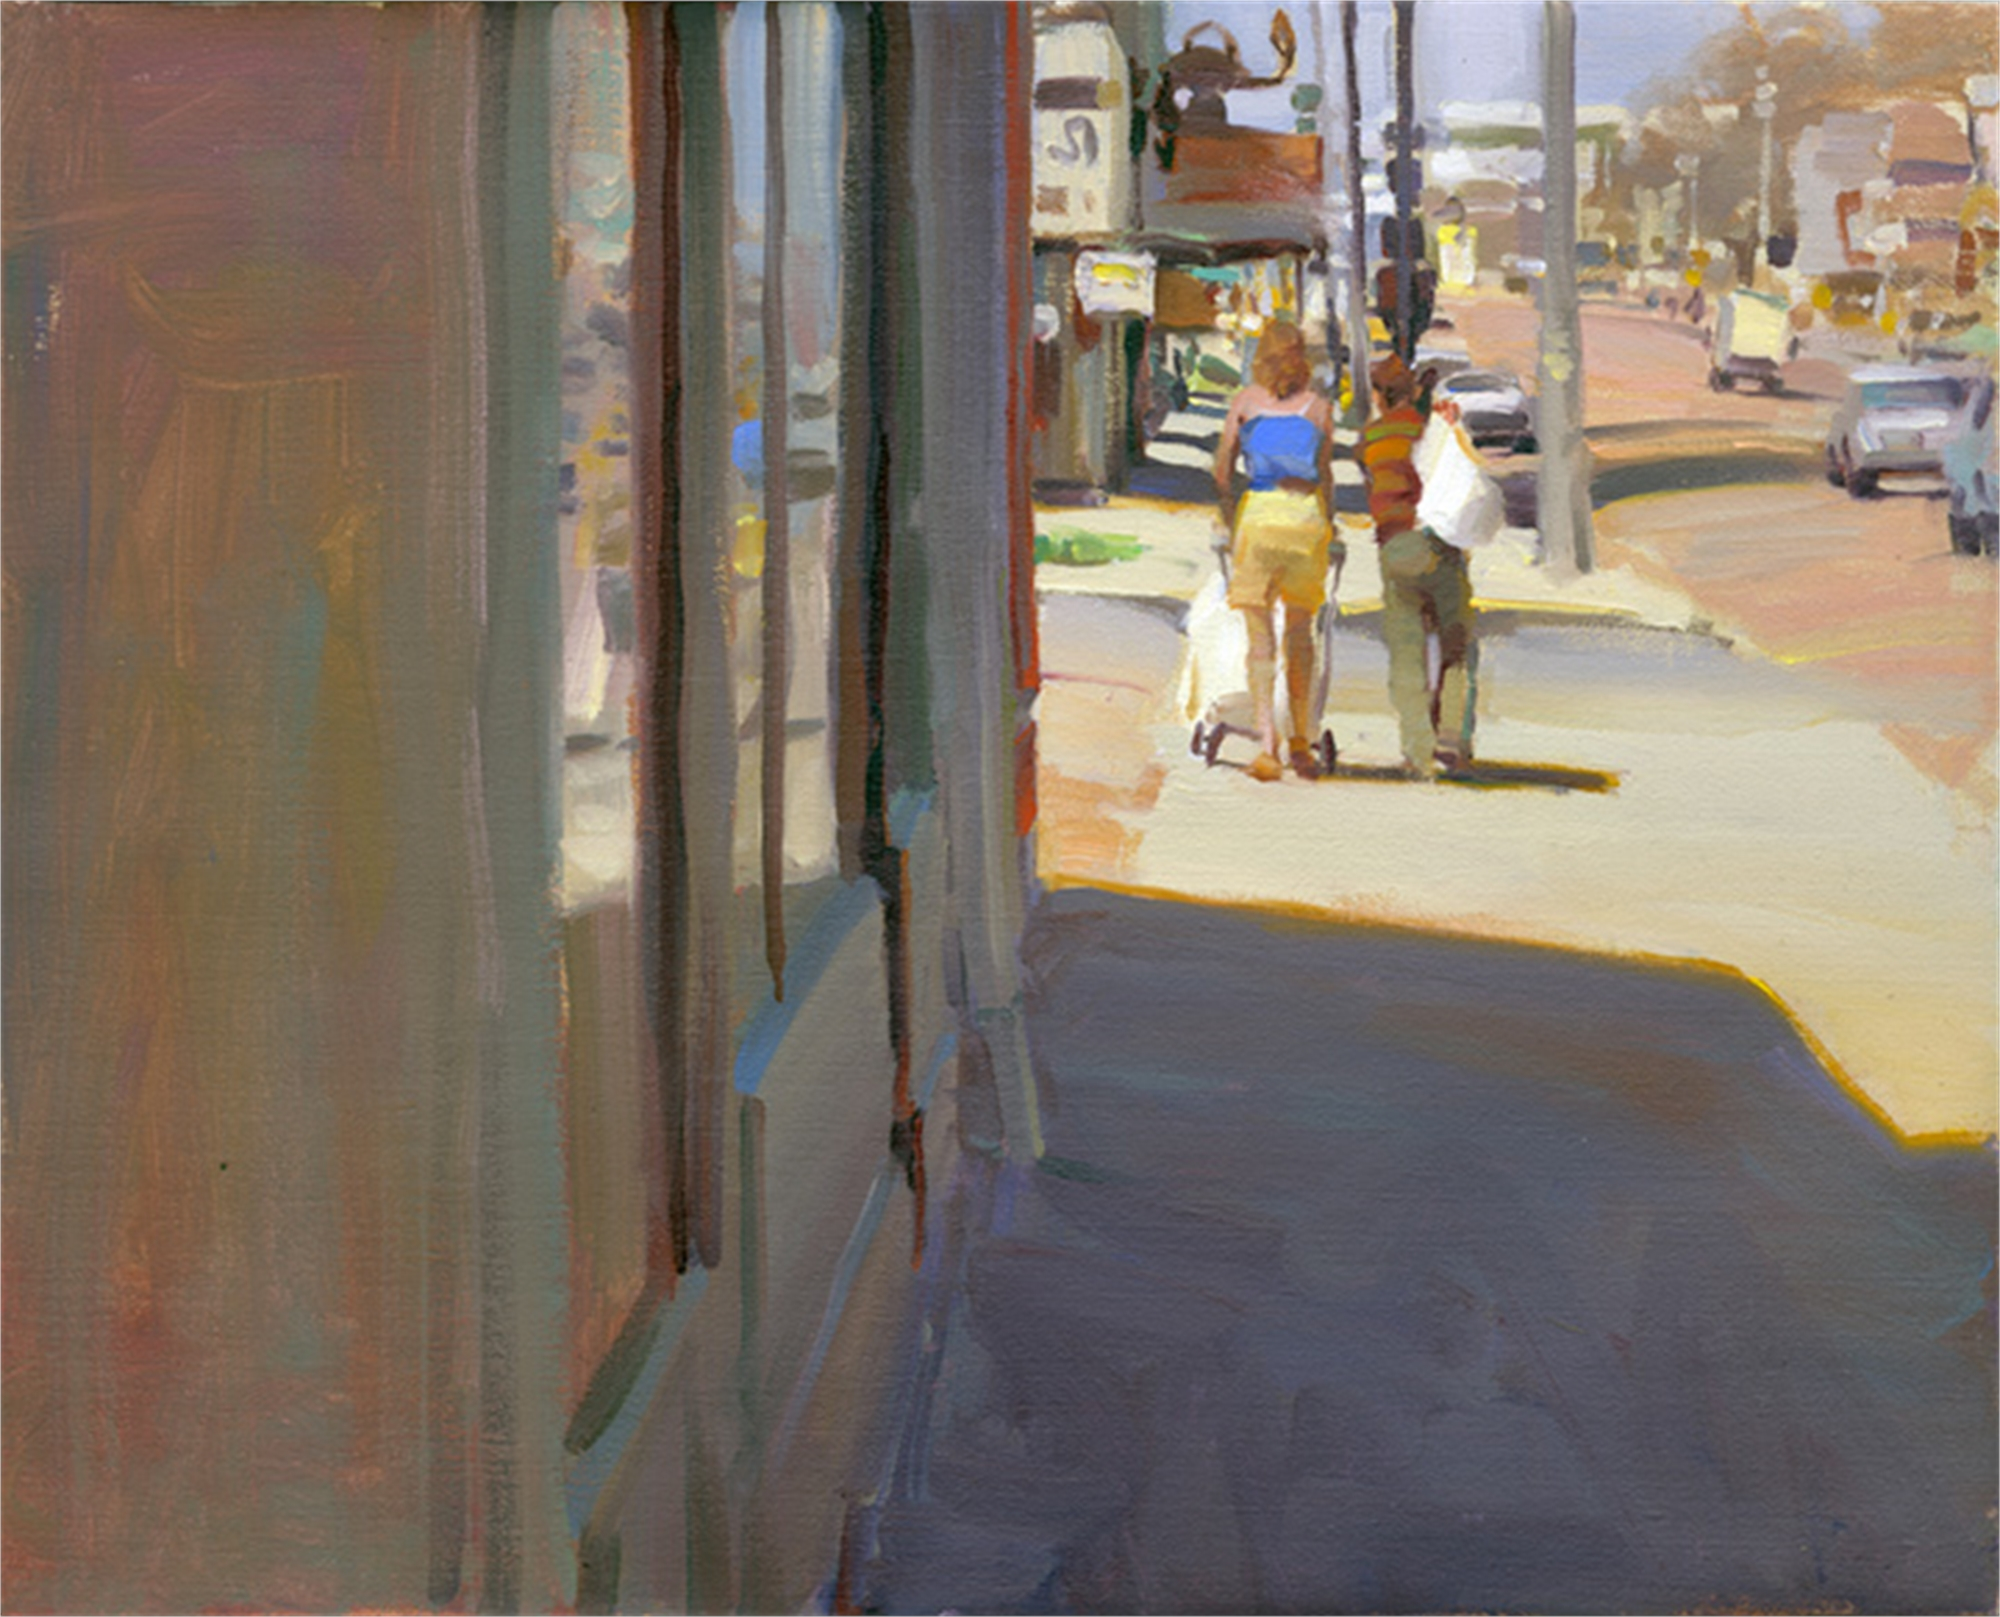 A Street in Denver by Kim English